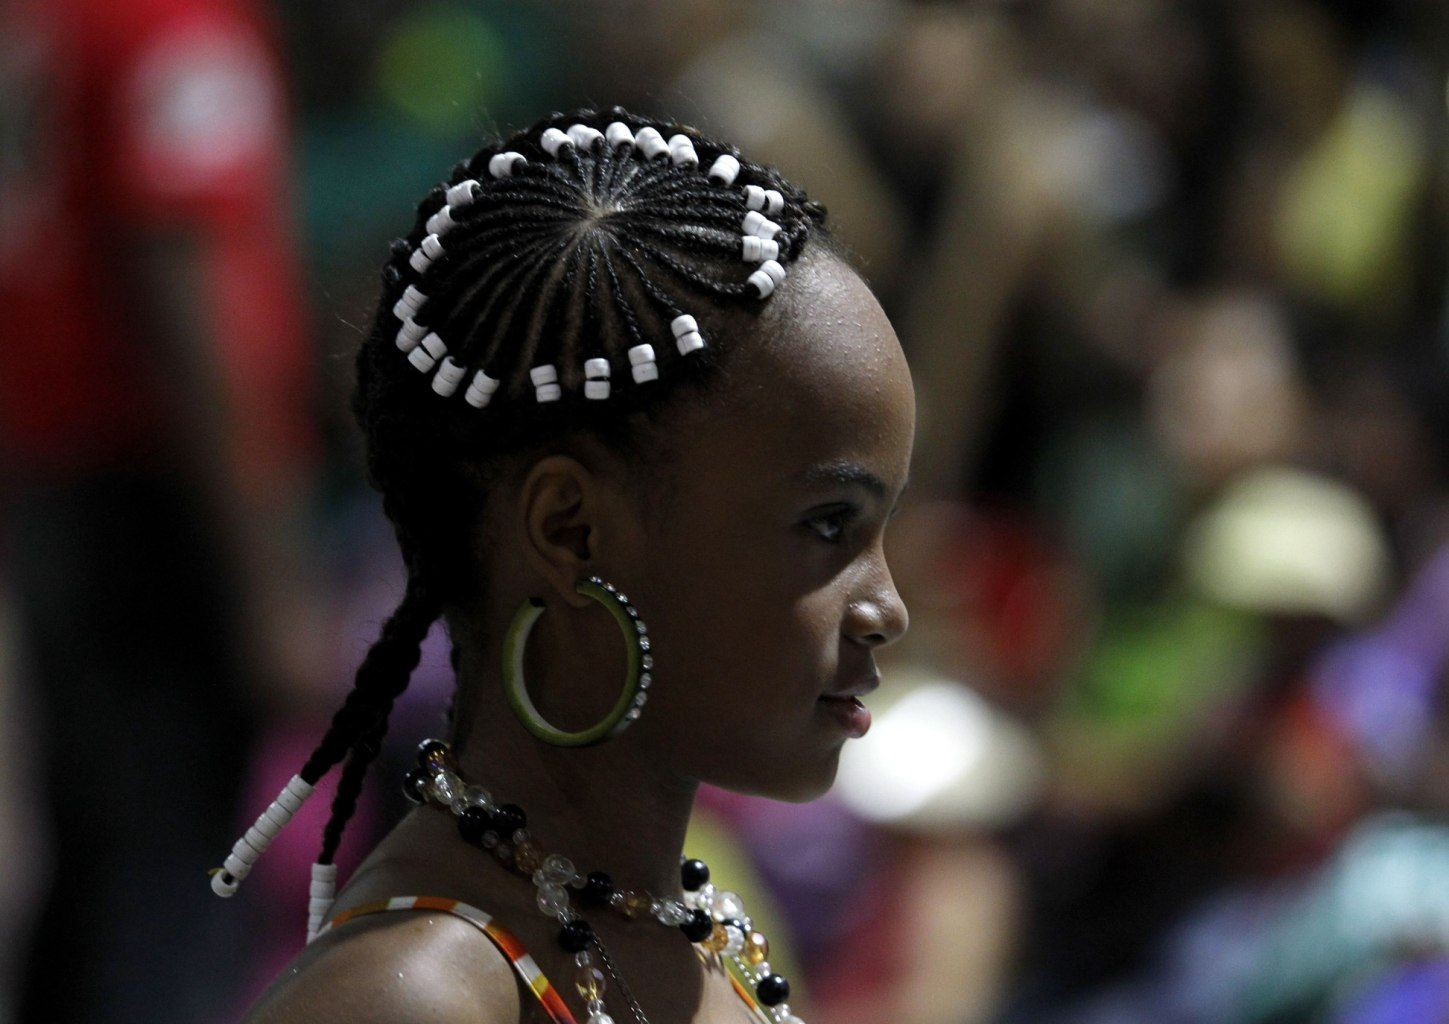 A woman presents an African-Colombian hairstyle during the ...